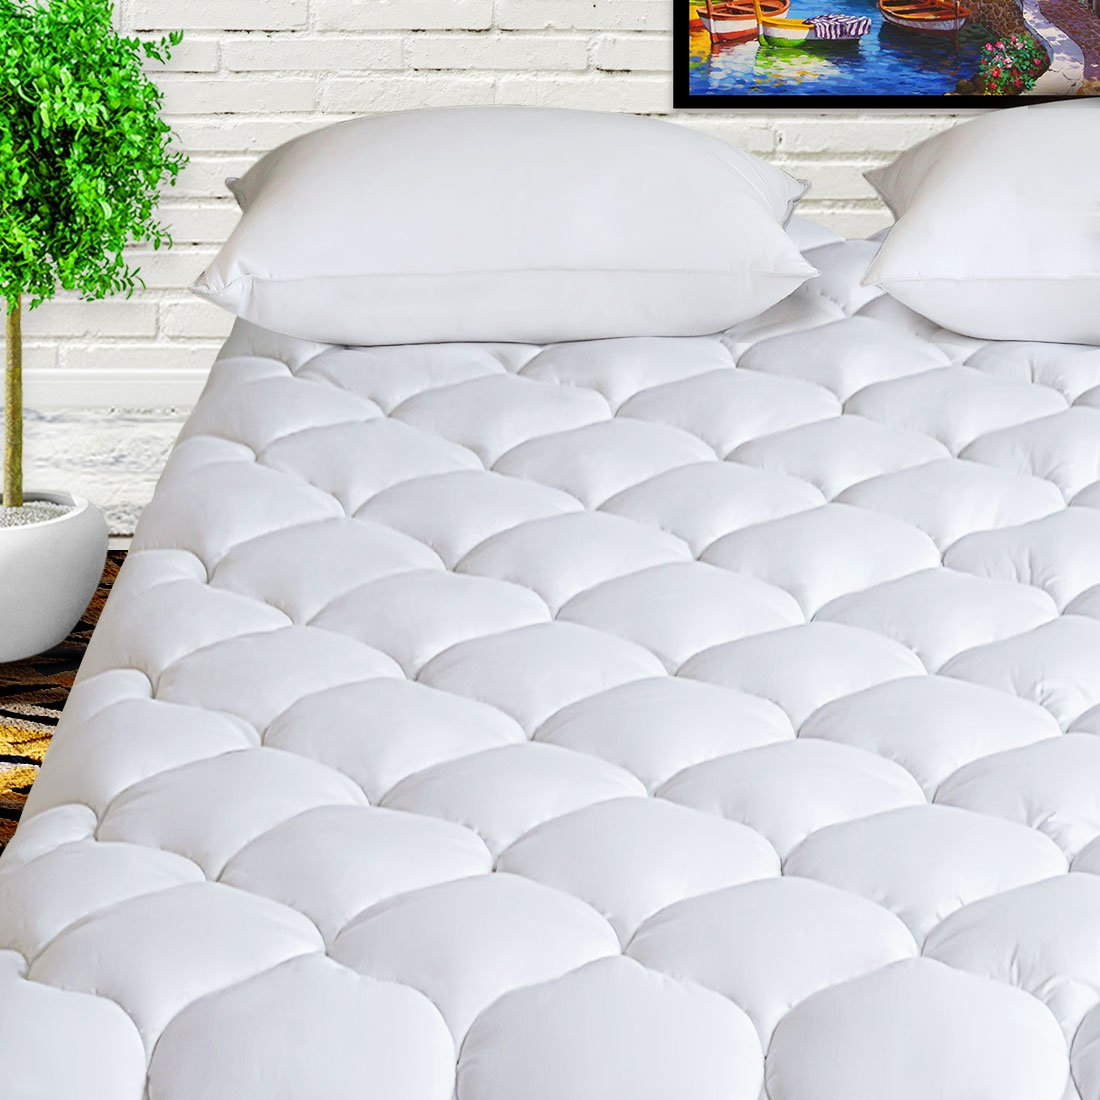 HARNY Mattress Pad Cover Cal King Size 400TC Cotton Pillow Top Cooling Breathable Mattress Topper Quilted Fitted with 8-21'' Deep Pocket